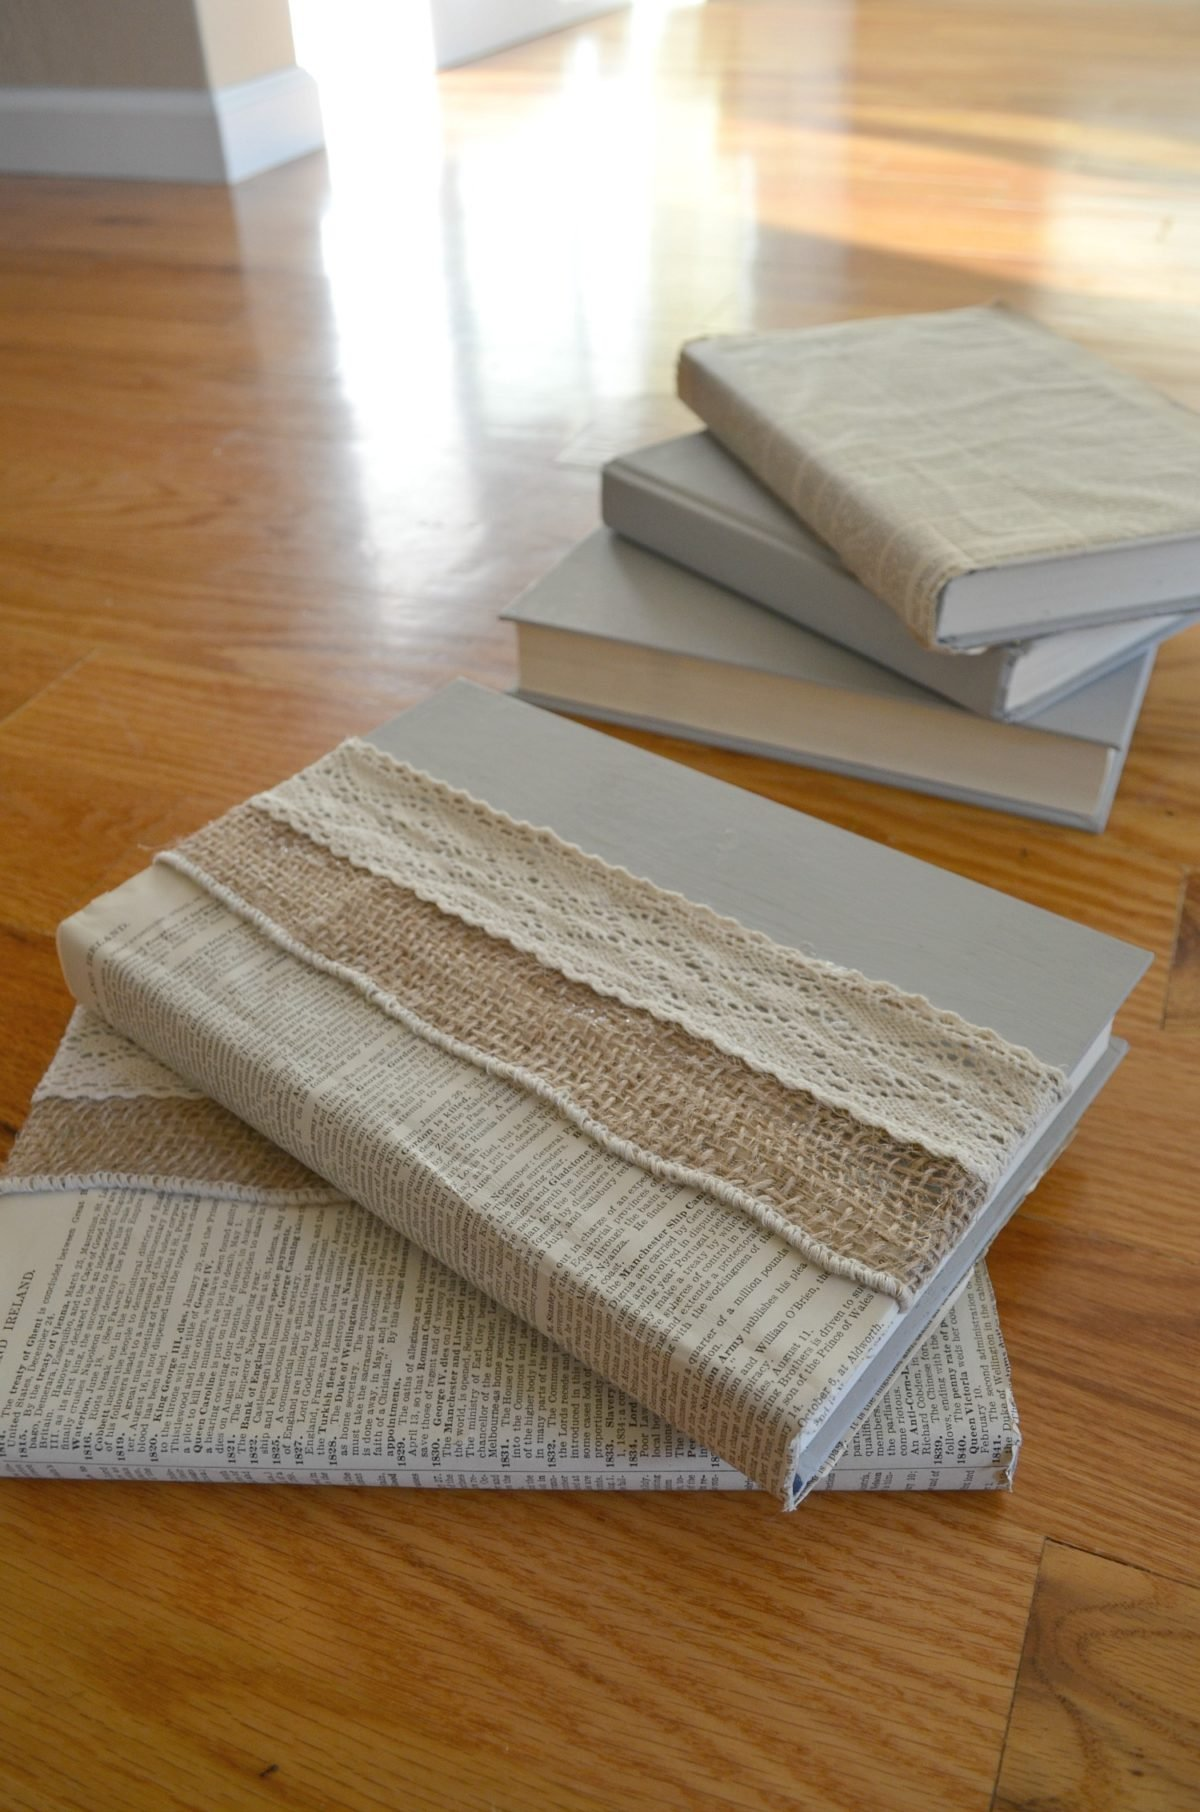 DIY Lined Books with Burlap, Book Pages, and Lace